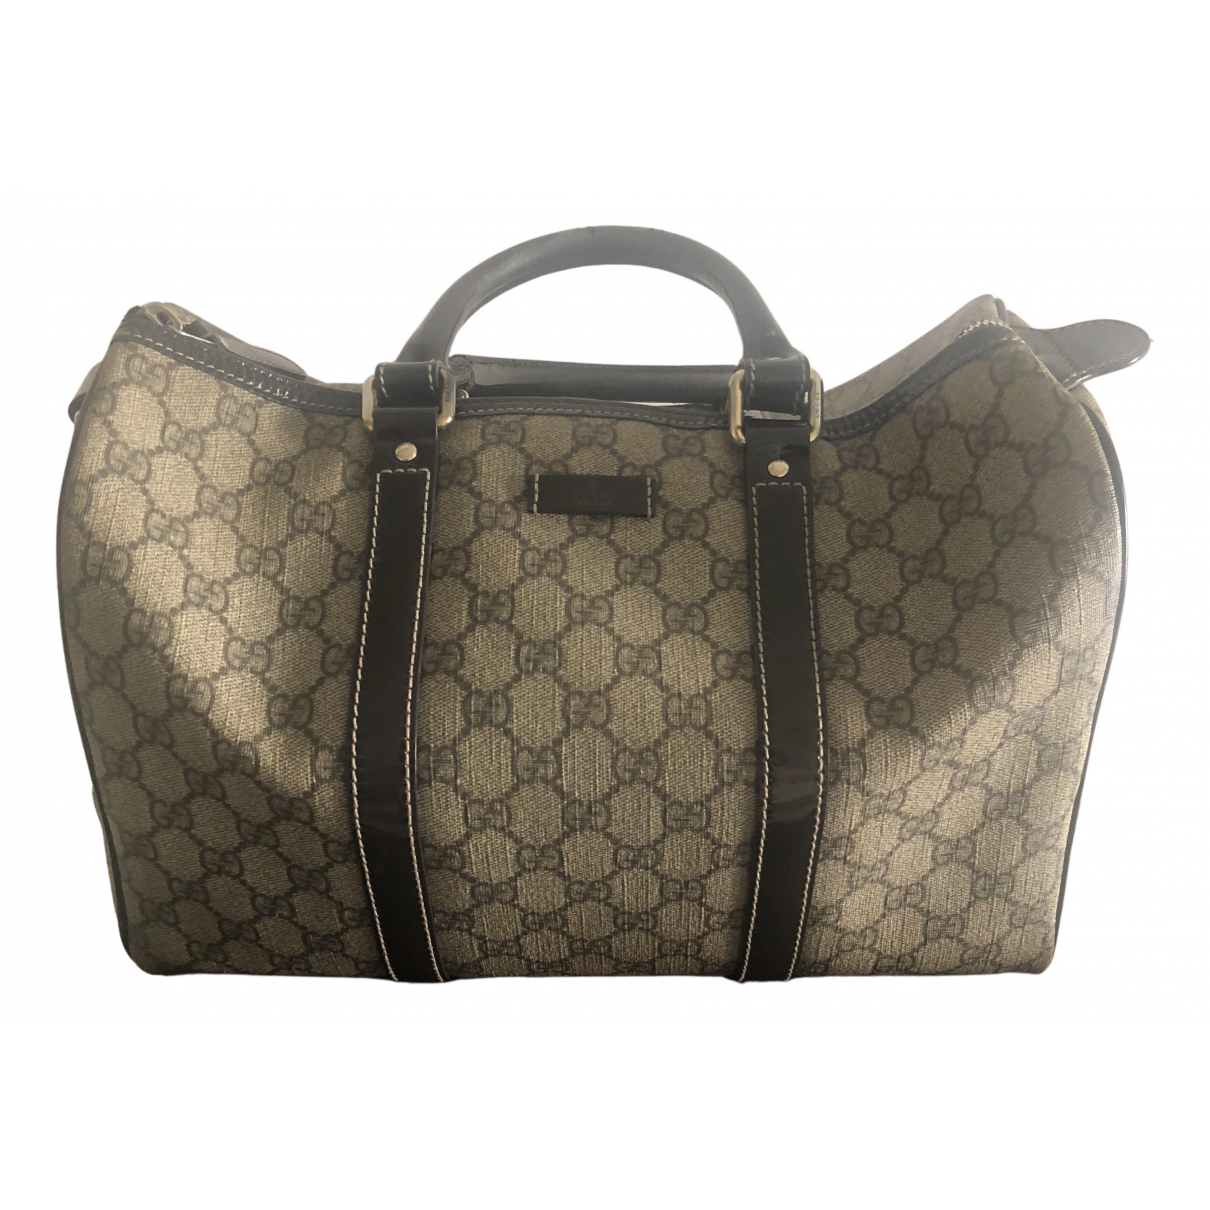 Gucci Boston Handtasche in  Beige Leinen